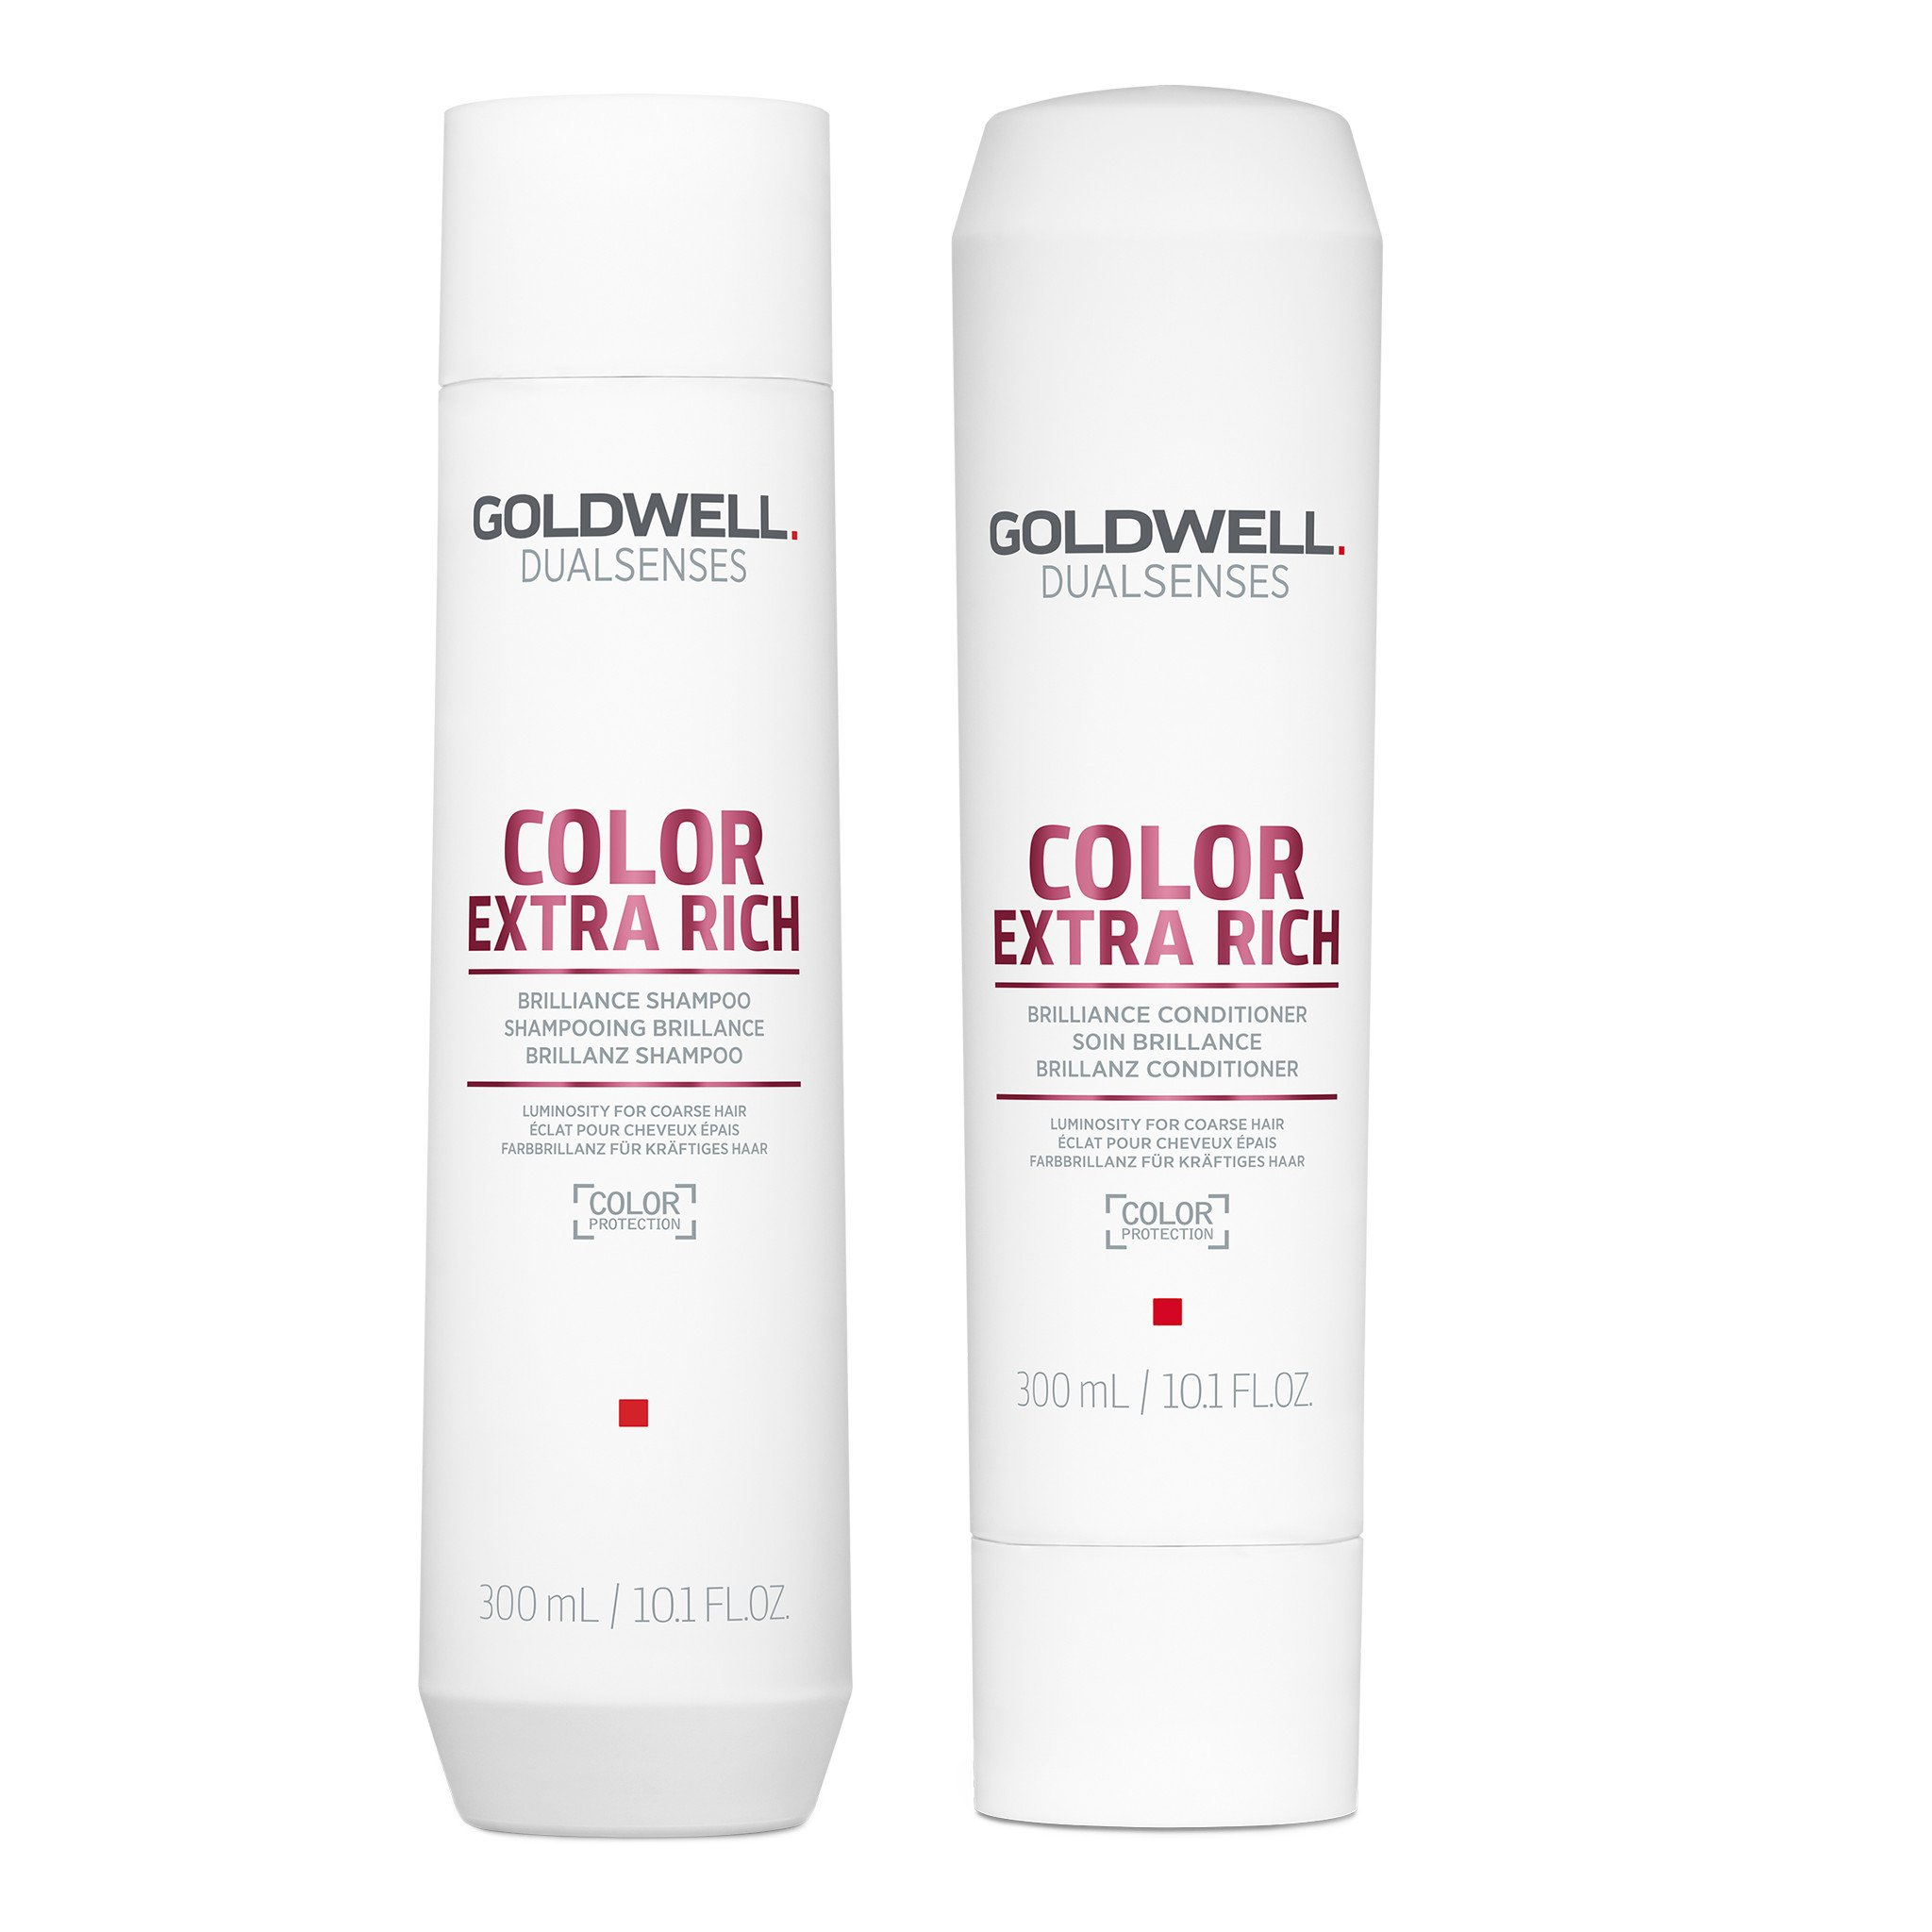 Goldwell Dualsenses Color Extra Rich Shampoo & Conditioner 300ml